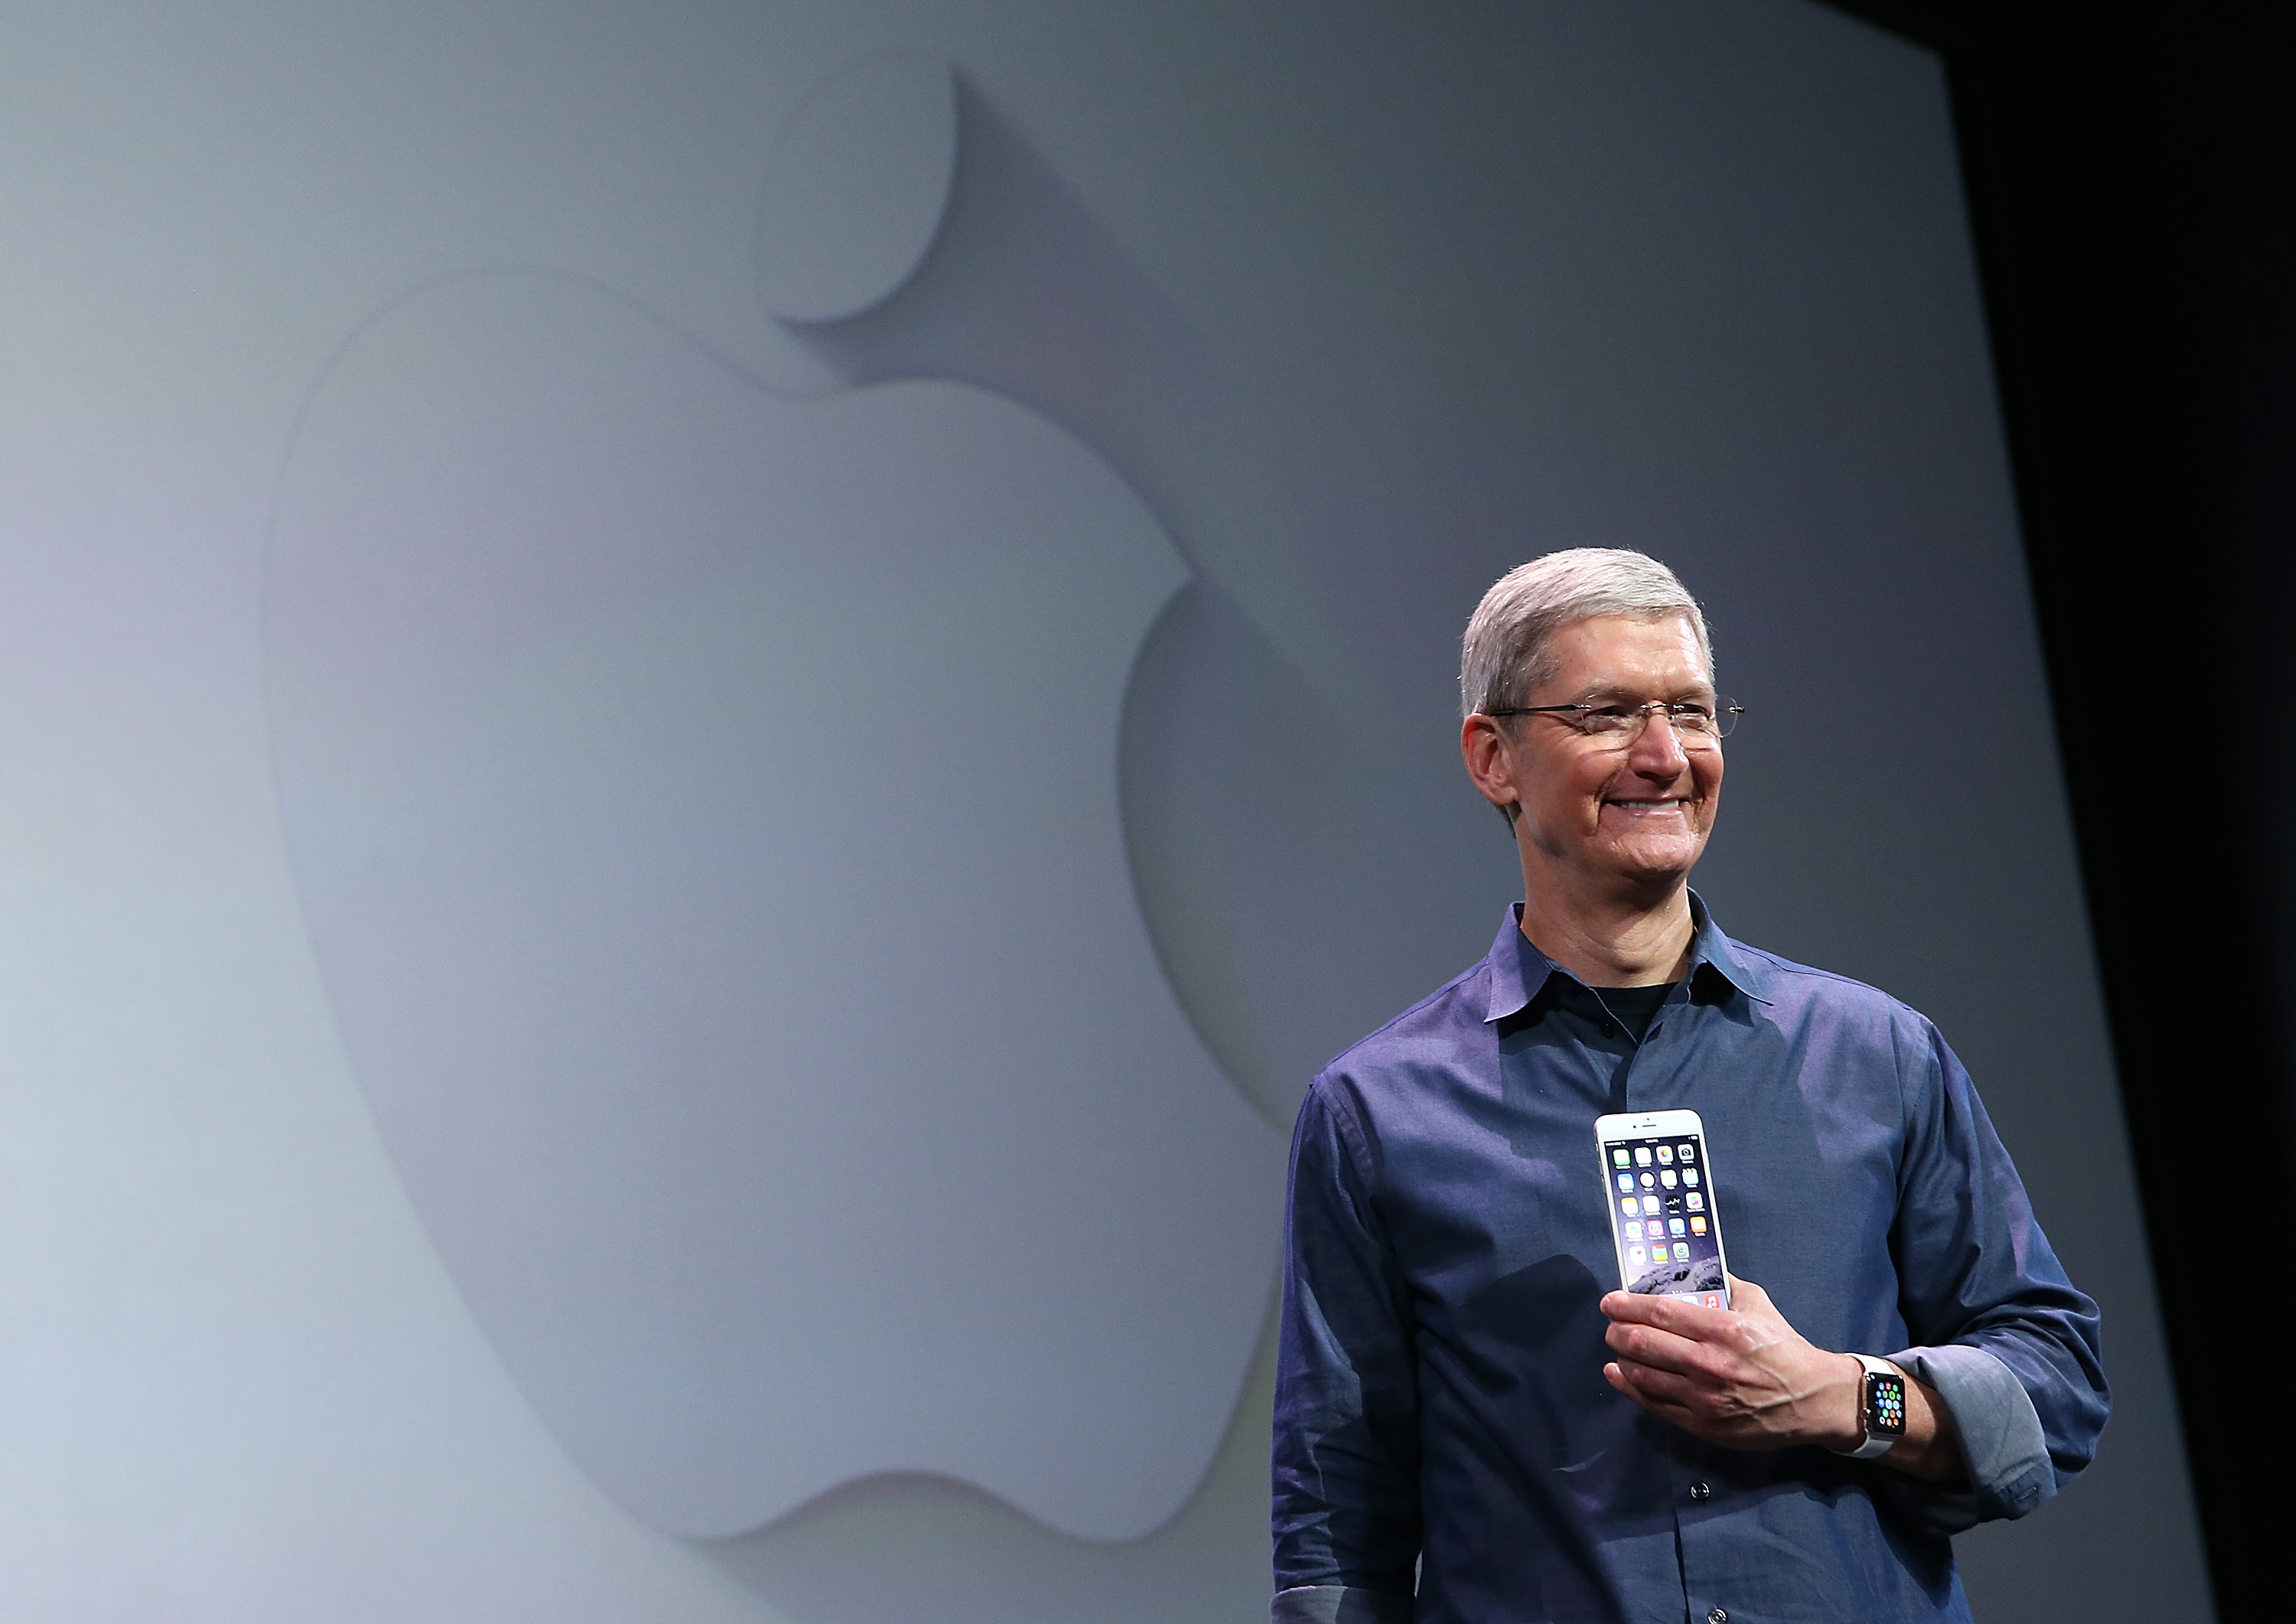 Apple CEO Tim Cook shows off the new iPhone 6 and the Apple Watch.  (Photo by Justin Sullivan/Getty Images)